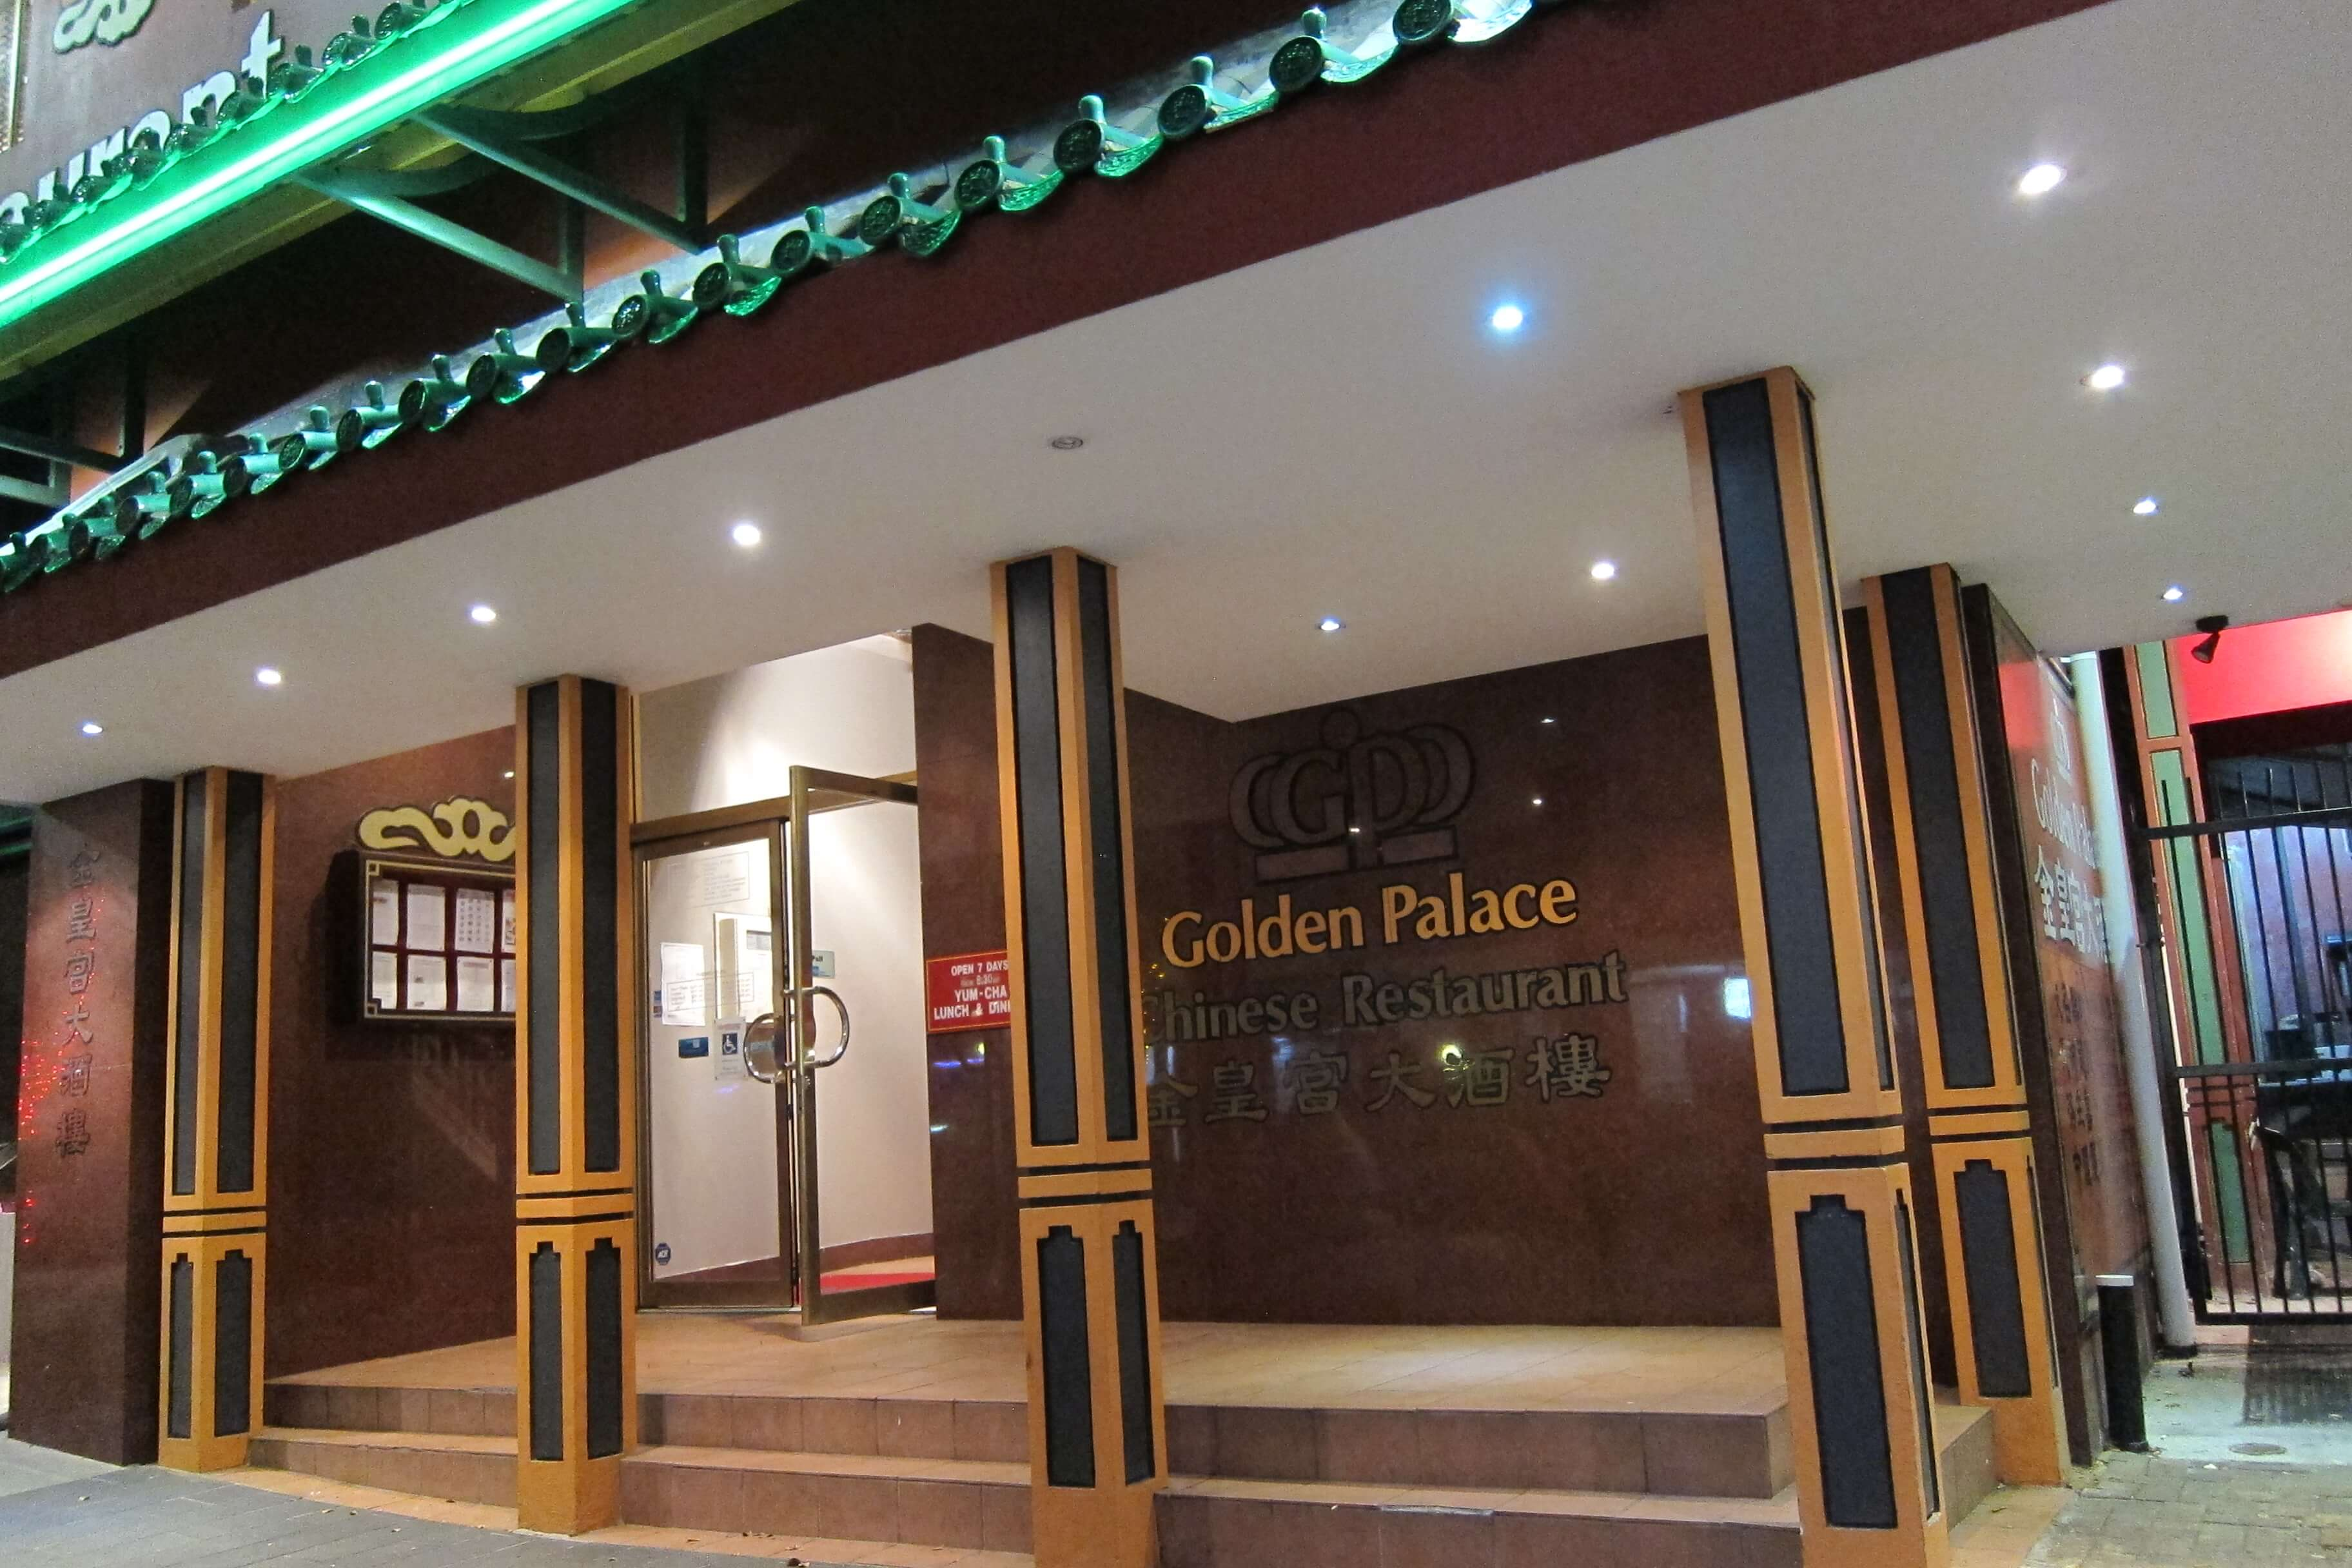 Golden Palace Chinese Seafood Restaurant, Fortitude Valley Brisbane ...